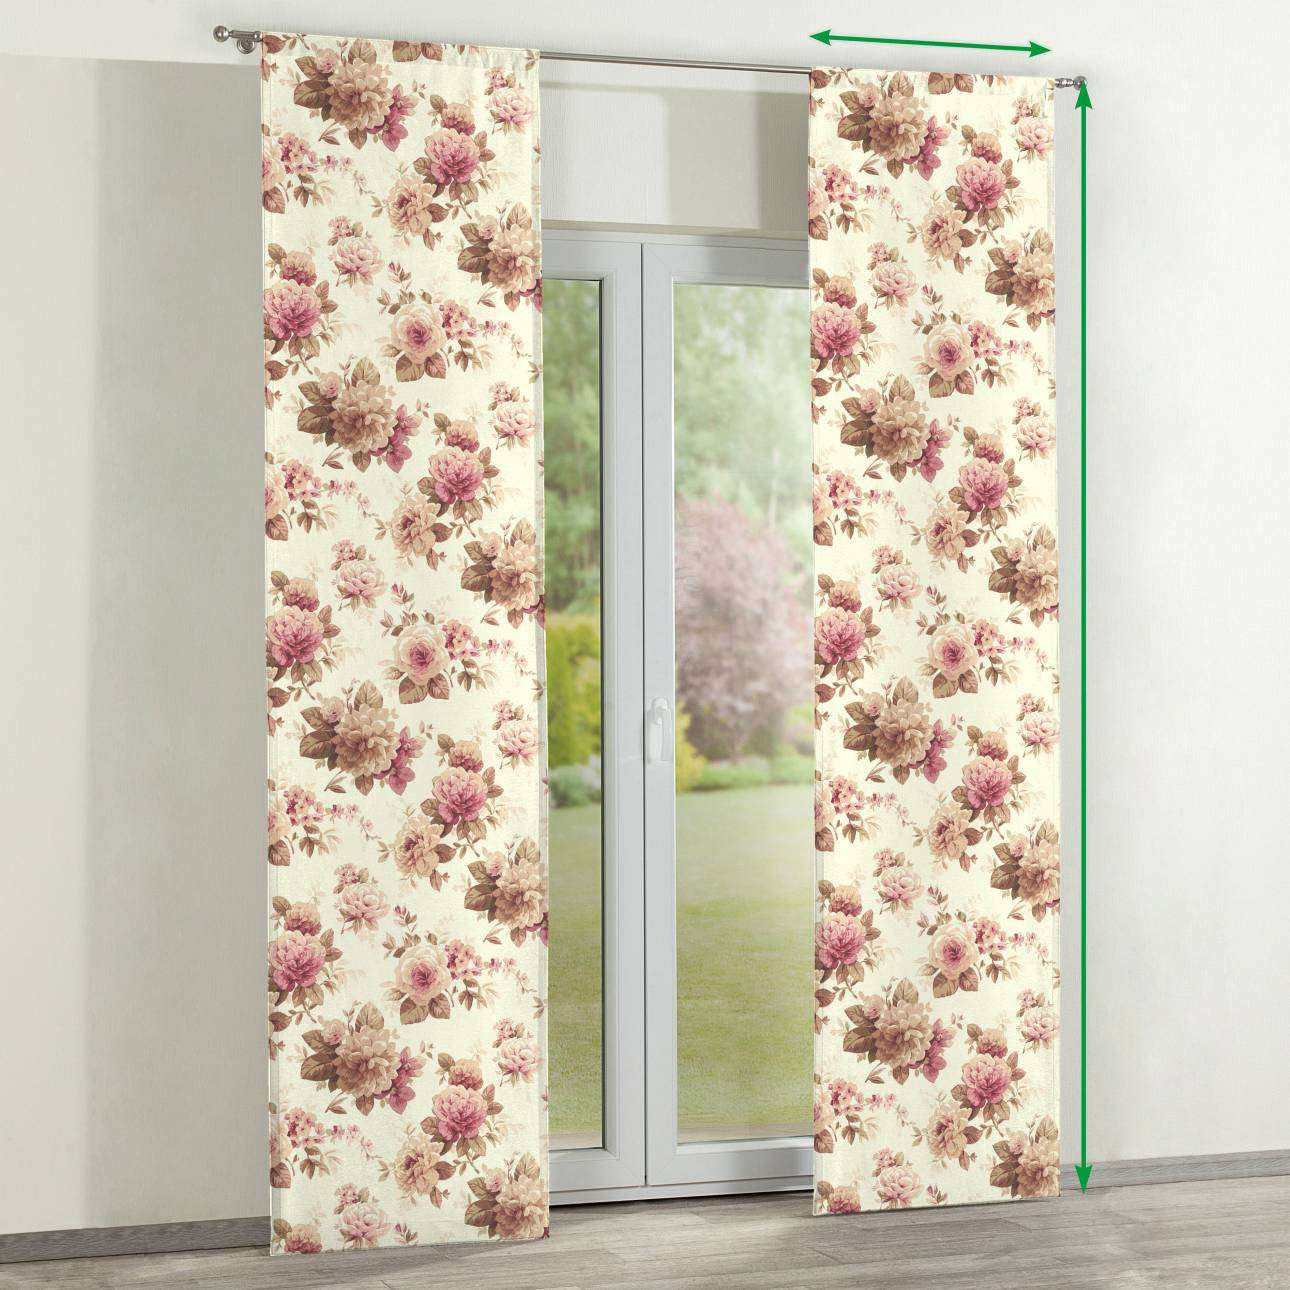 Slot panel curtains – Set of 2 in collection Mirella, fabric: 141-06